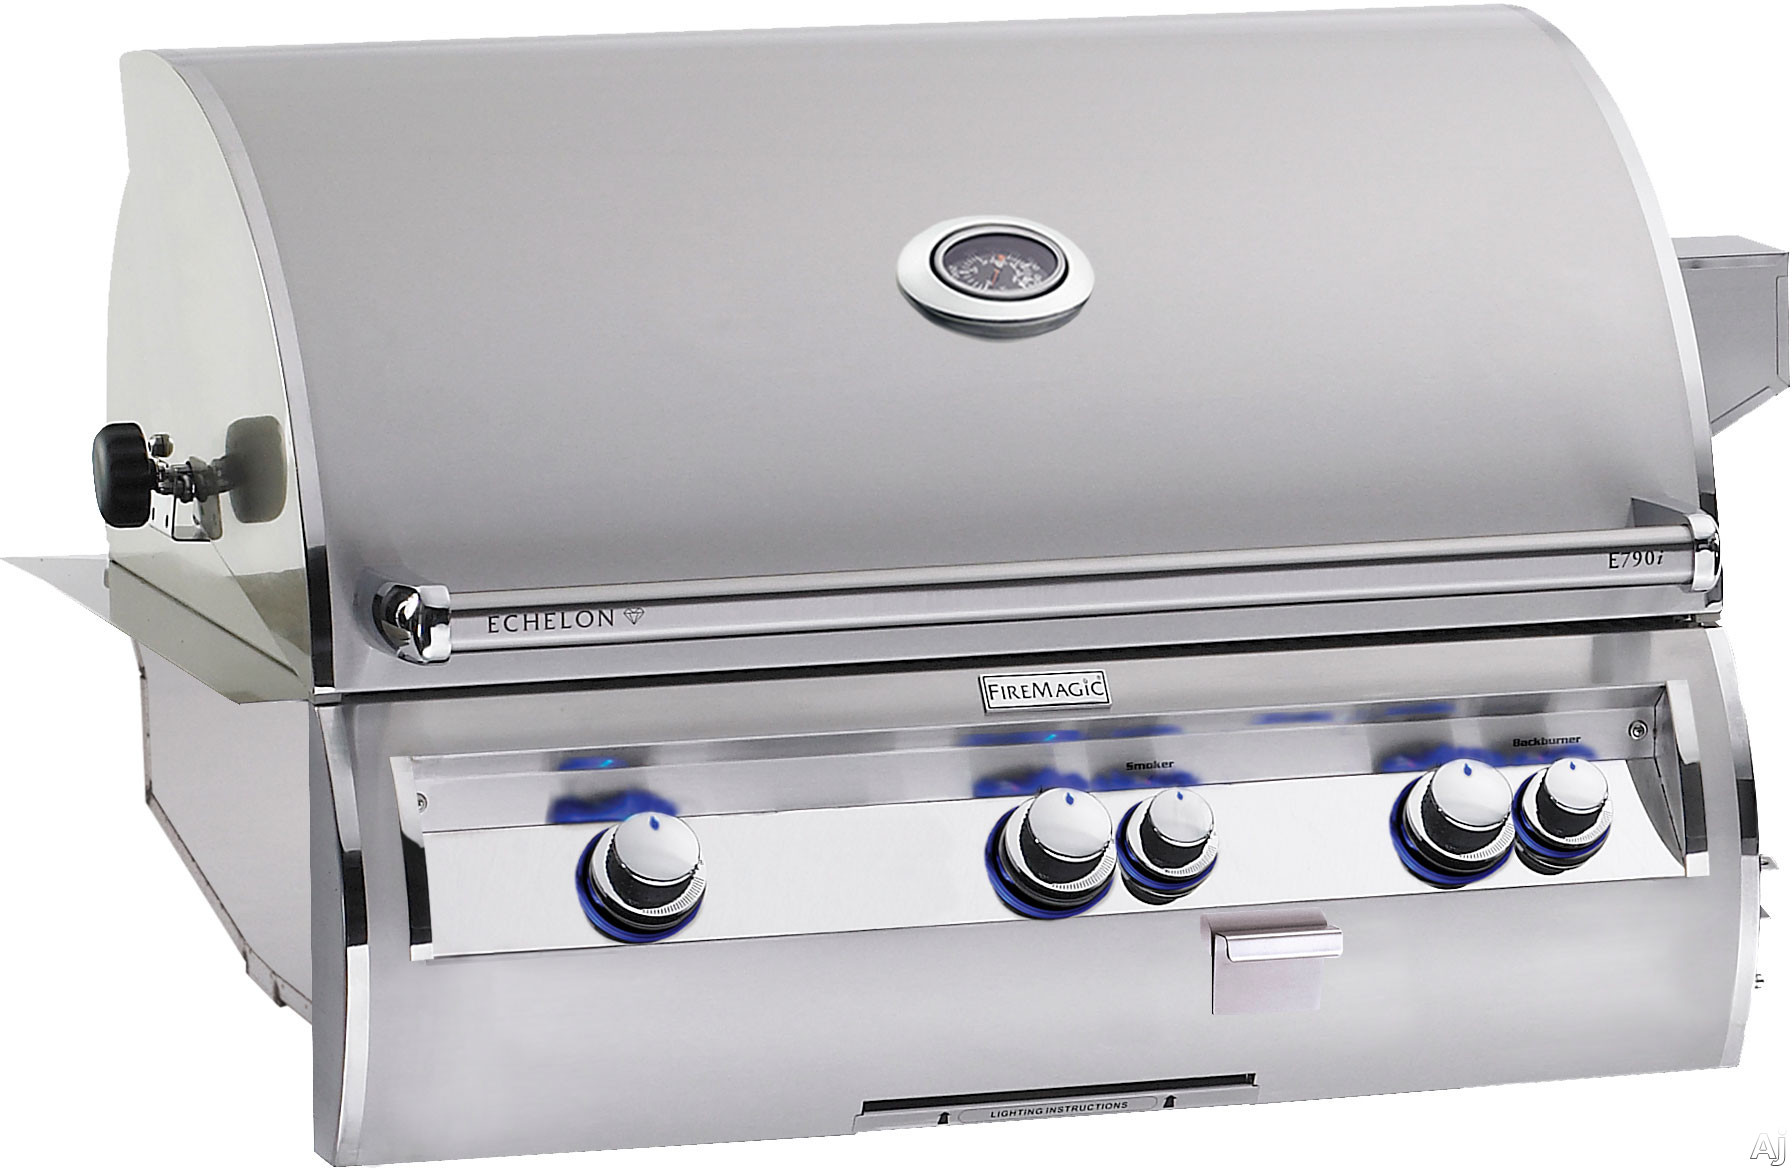 Fire Magic Echelon Collection E790I4AAP 36 Inch Built-in Gas Grill with 792 sq. in. Cooking Surface, 99,000 BTU Primary Burners, 13,000 BTU Back Burner, Charcoal and Smoker Basket: Propane, All Infrar